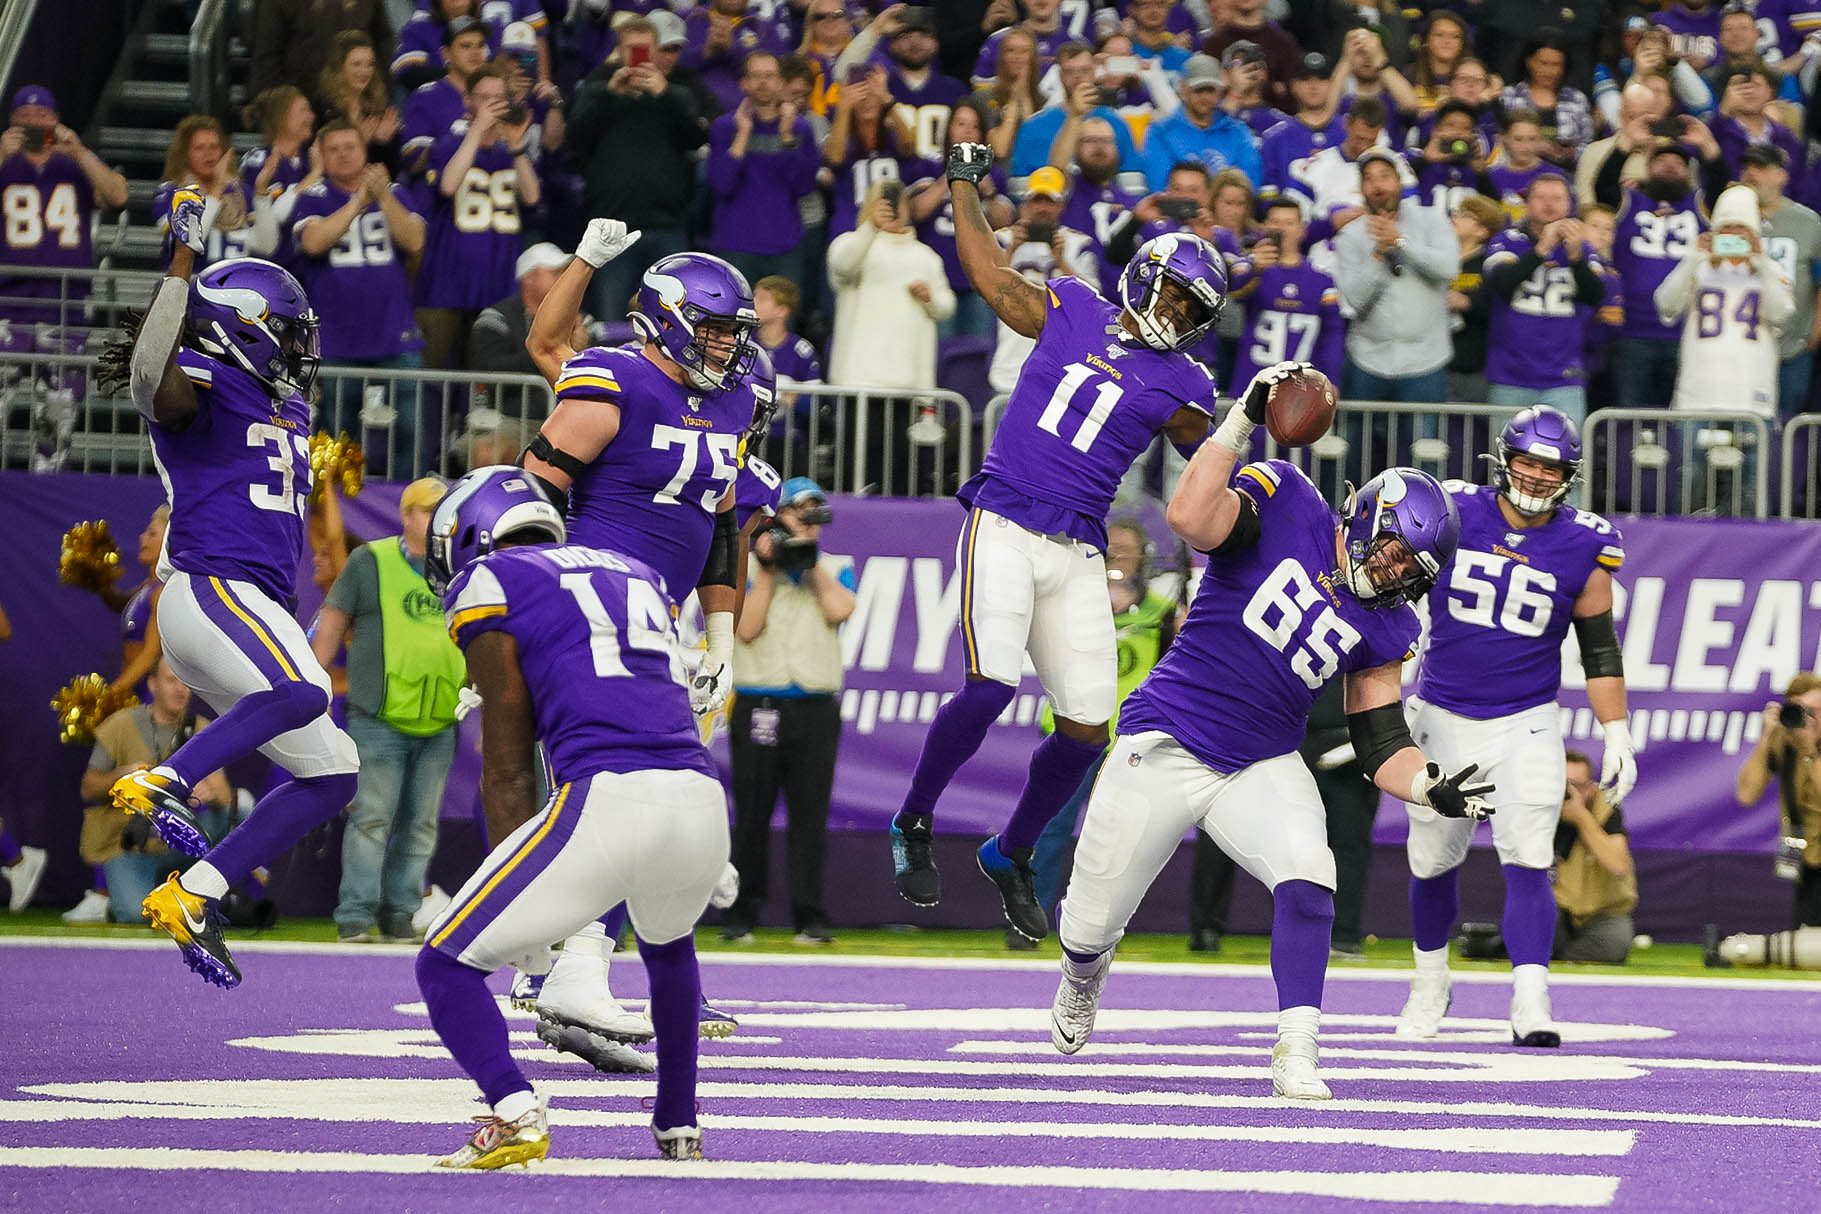 Dec 8, 2019; Minneapolis, MN, USA; Minnesota Vikings offensive lineman Pat Elflein (65) celebrates running back Dalvin Cook (33) touchdown in the second quarter against Detroit Lions at U.S. Bank Stadium. Mandatory Credit: Brad Rempel-USA TODAY Sports